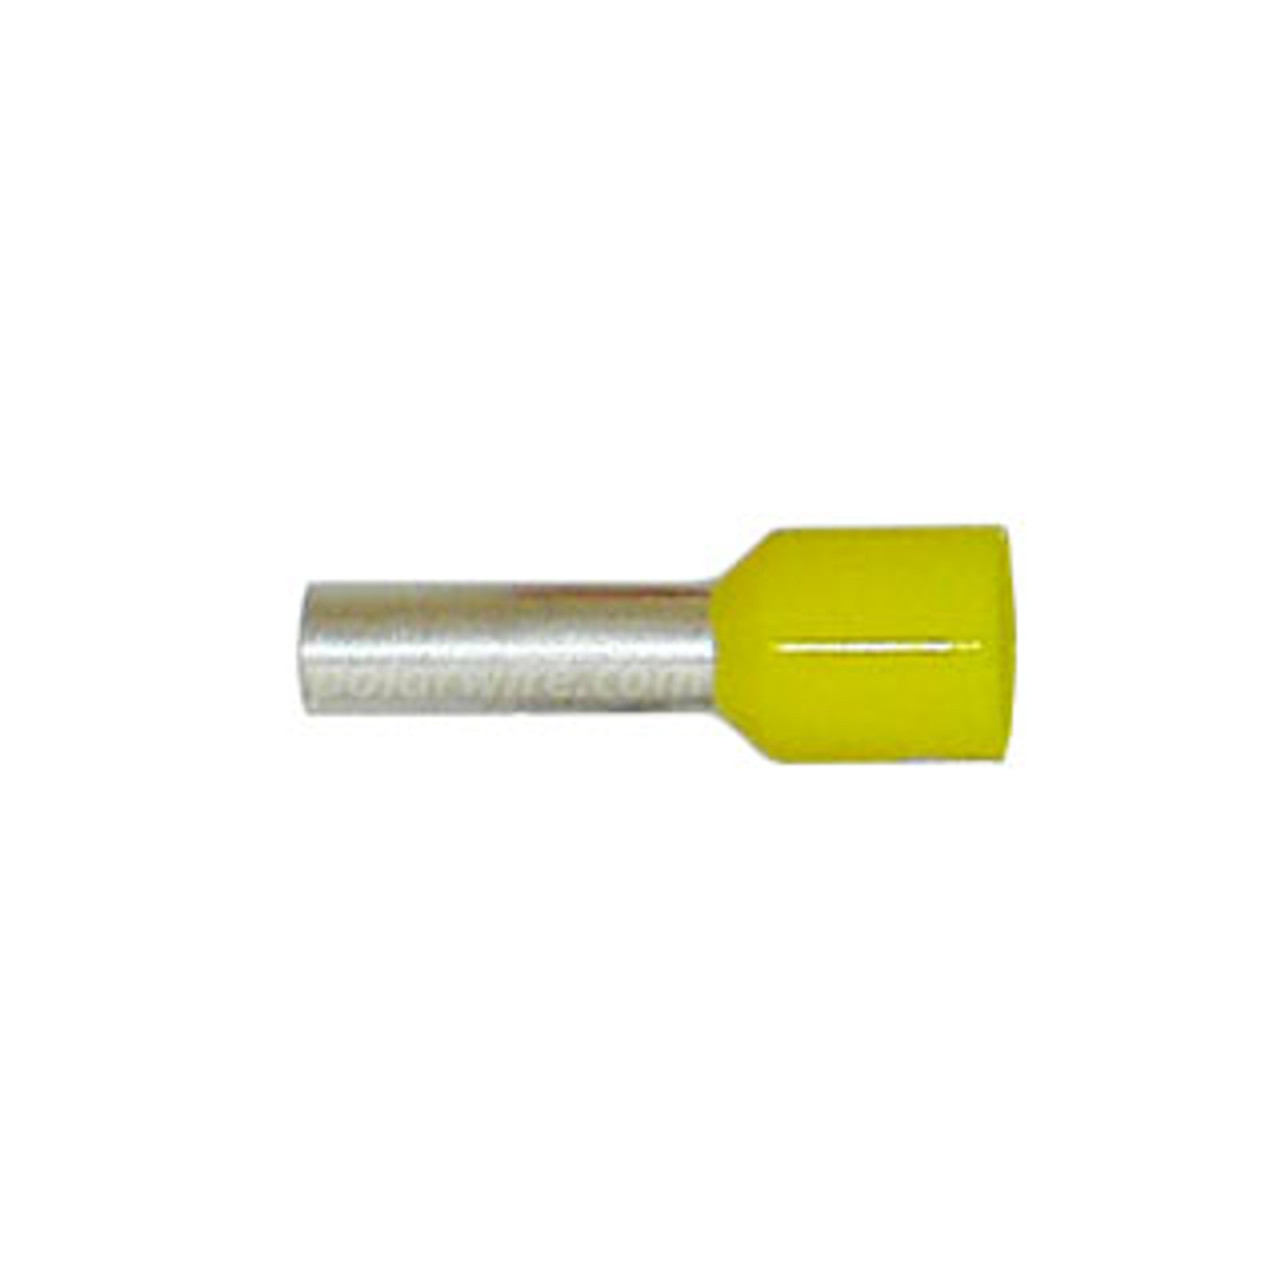 FERRULE 10GA YELLOW INSULATED 6MM